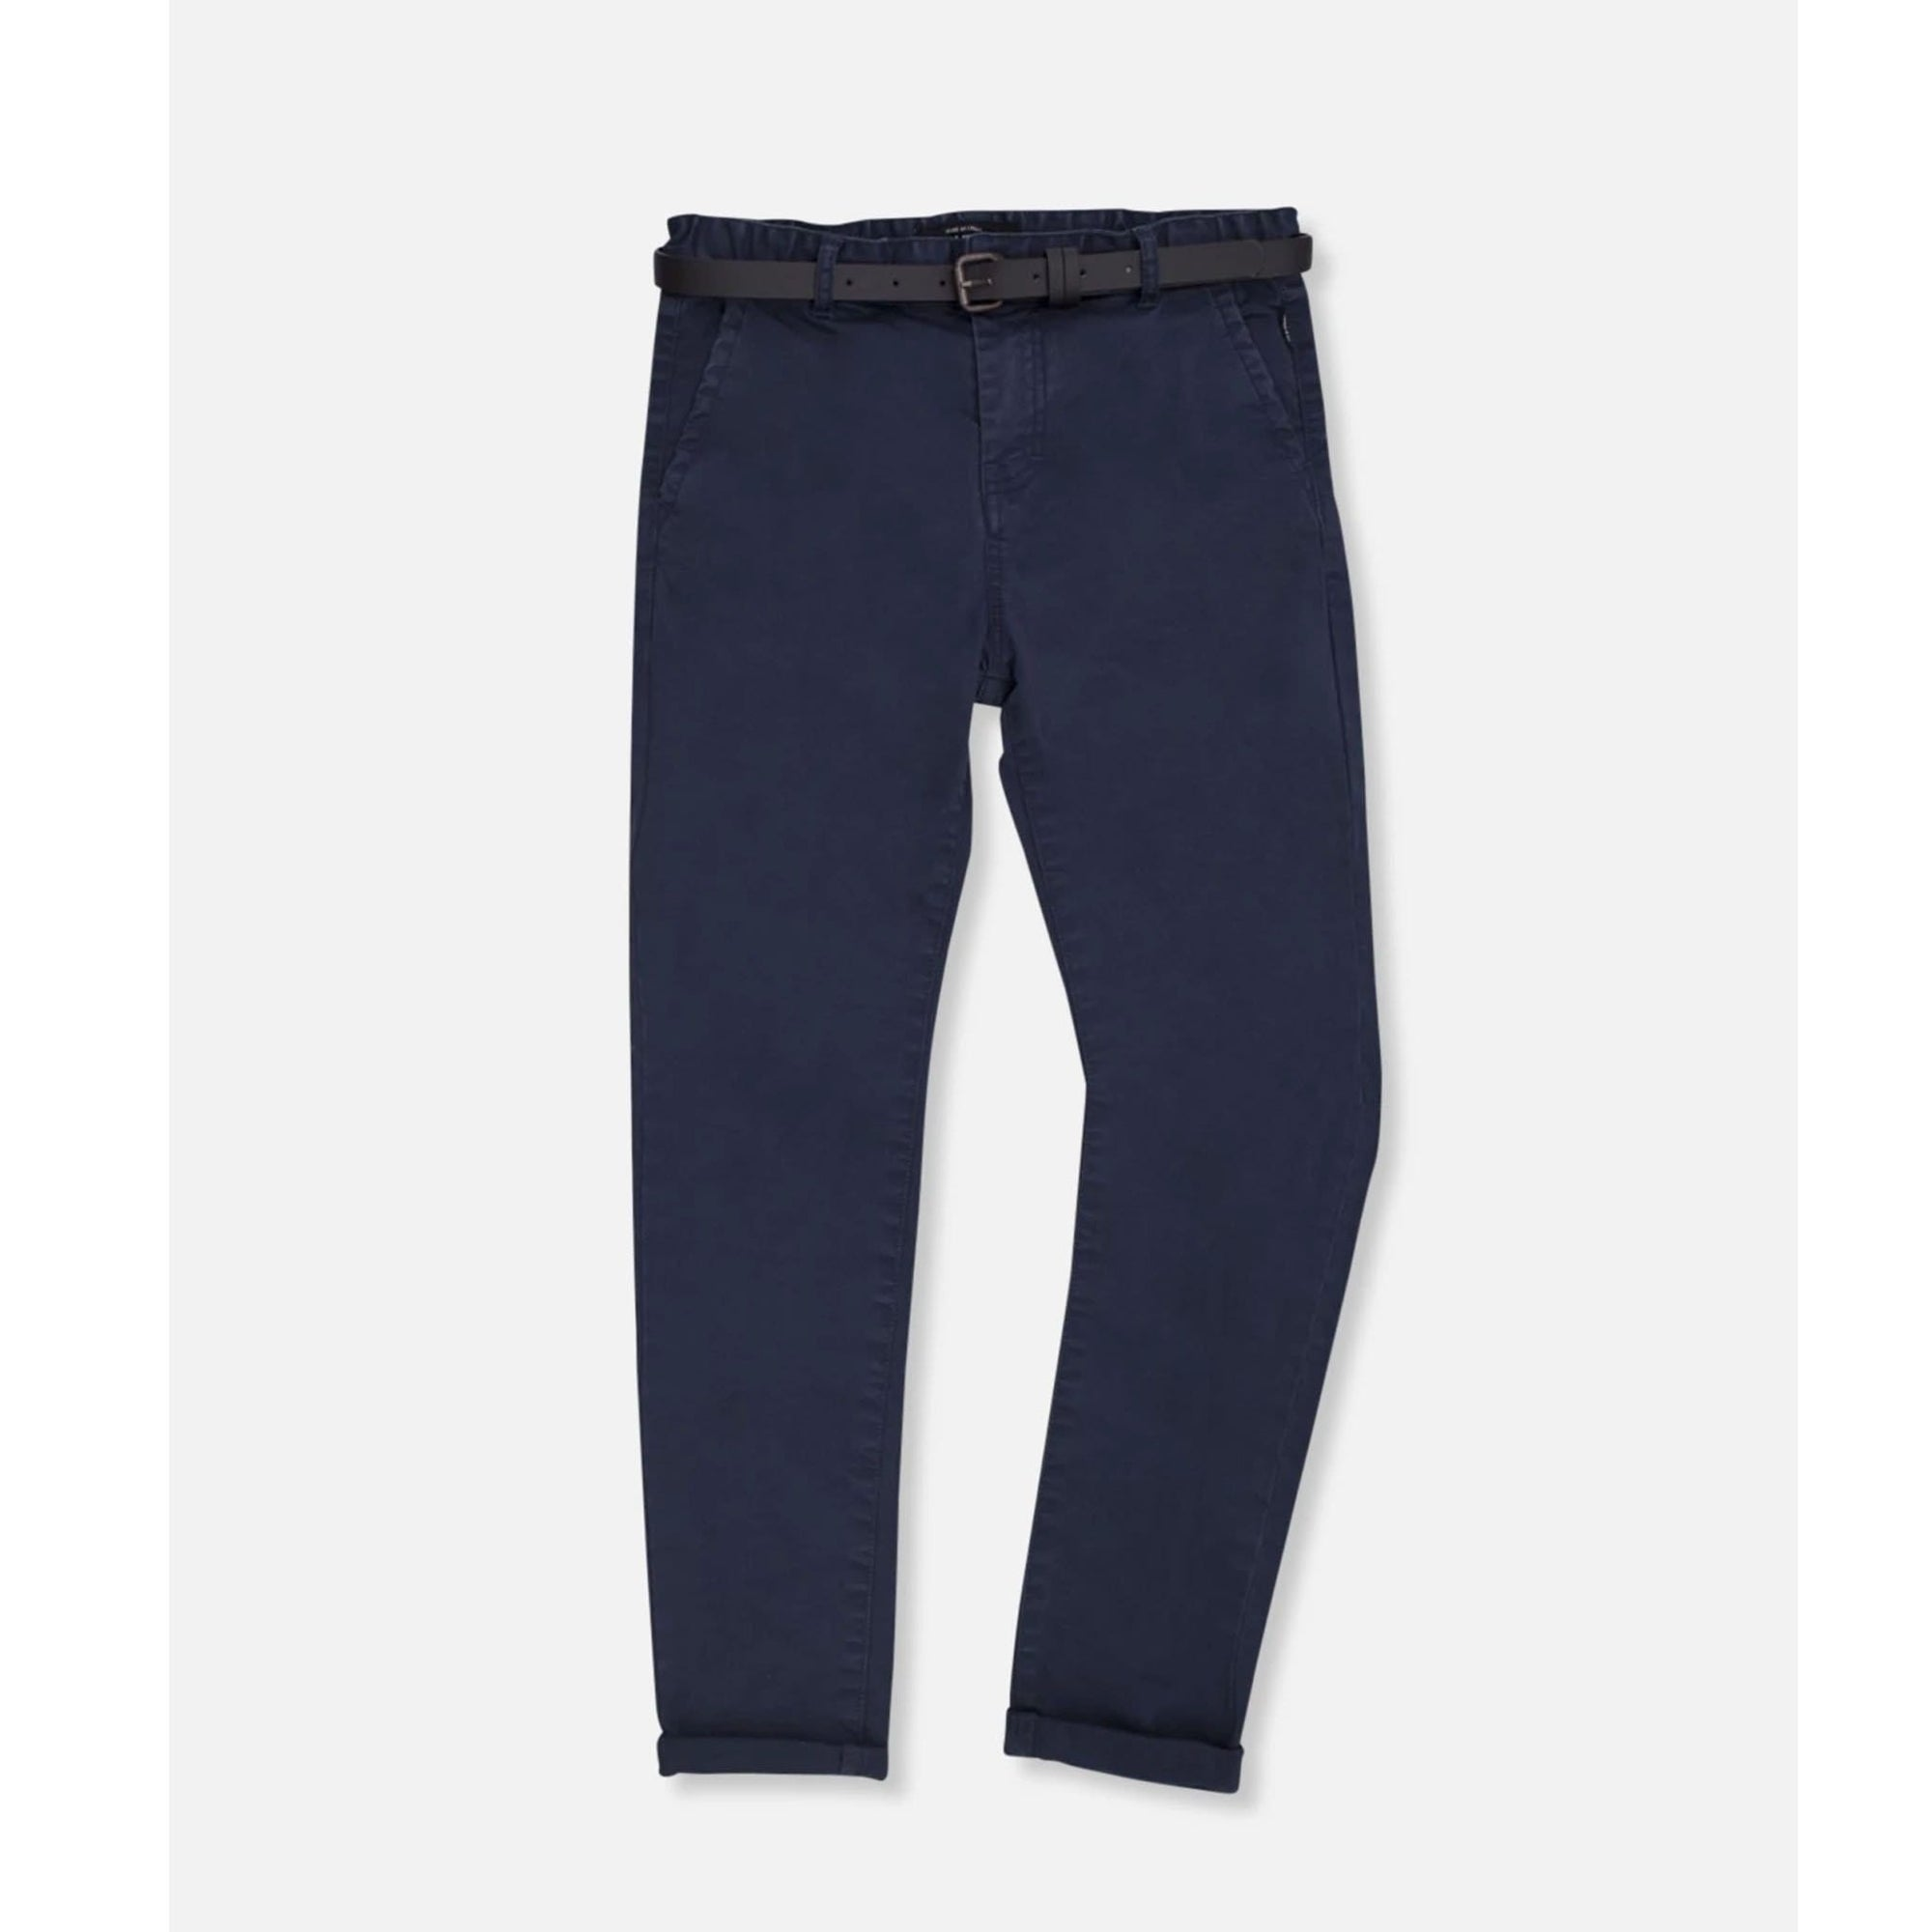 Industrie Kids Tweens Cuba Stretch Chino Navy